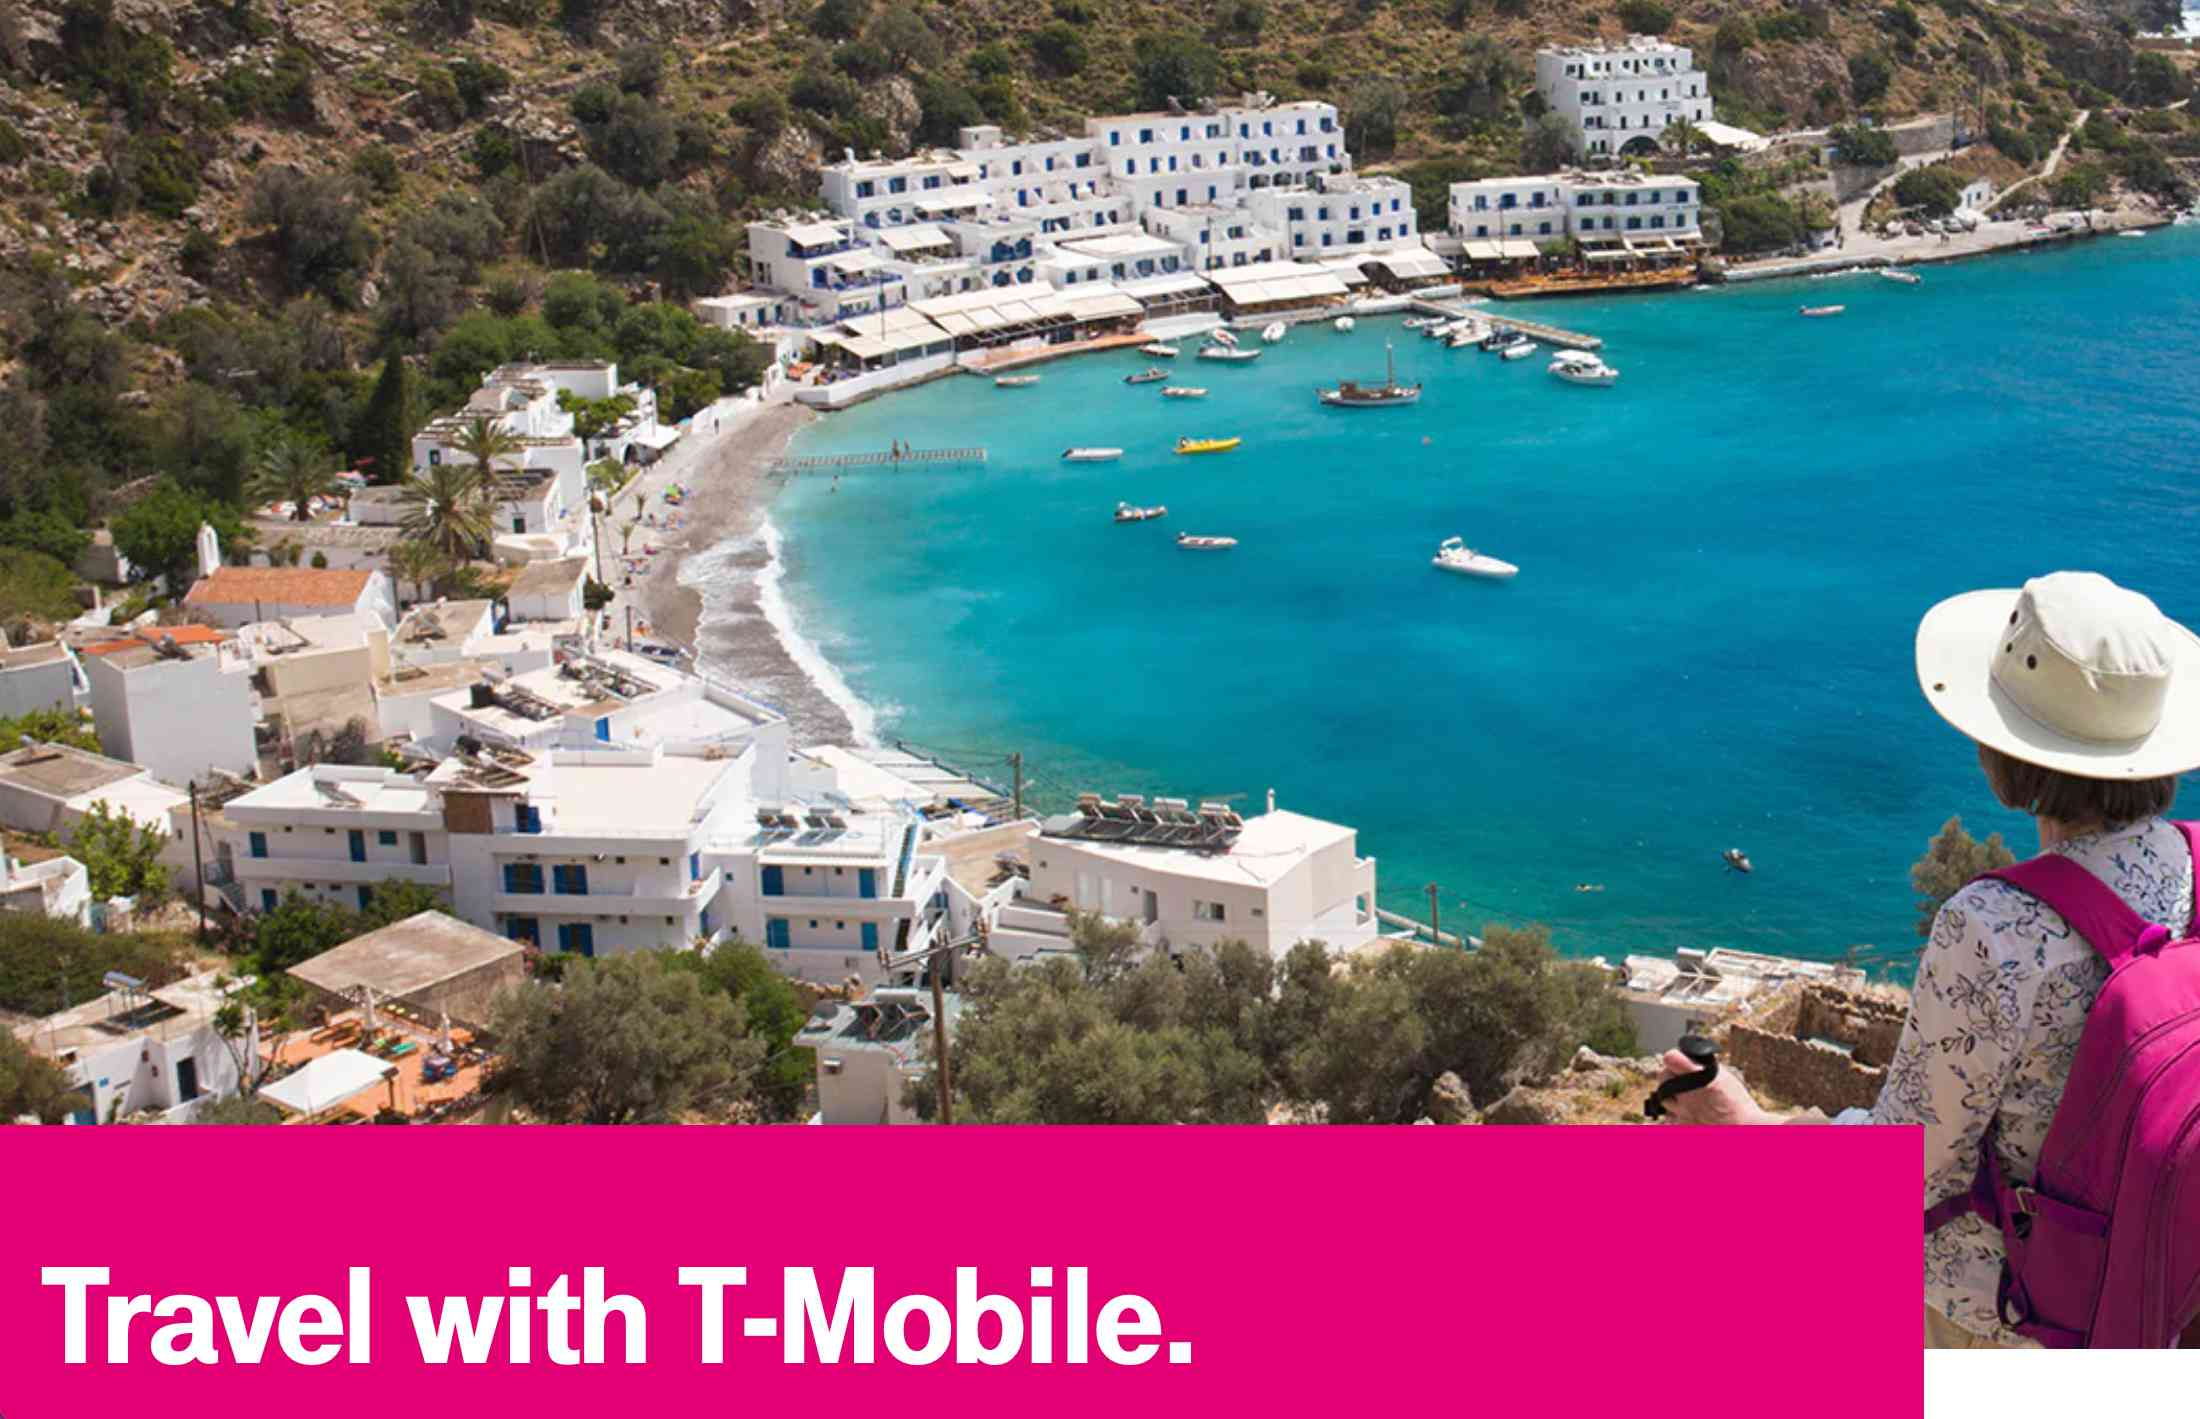 T-Mobile travel options